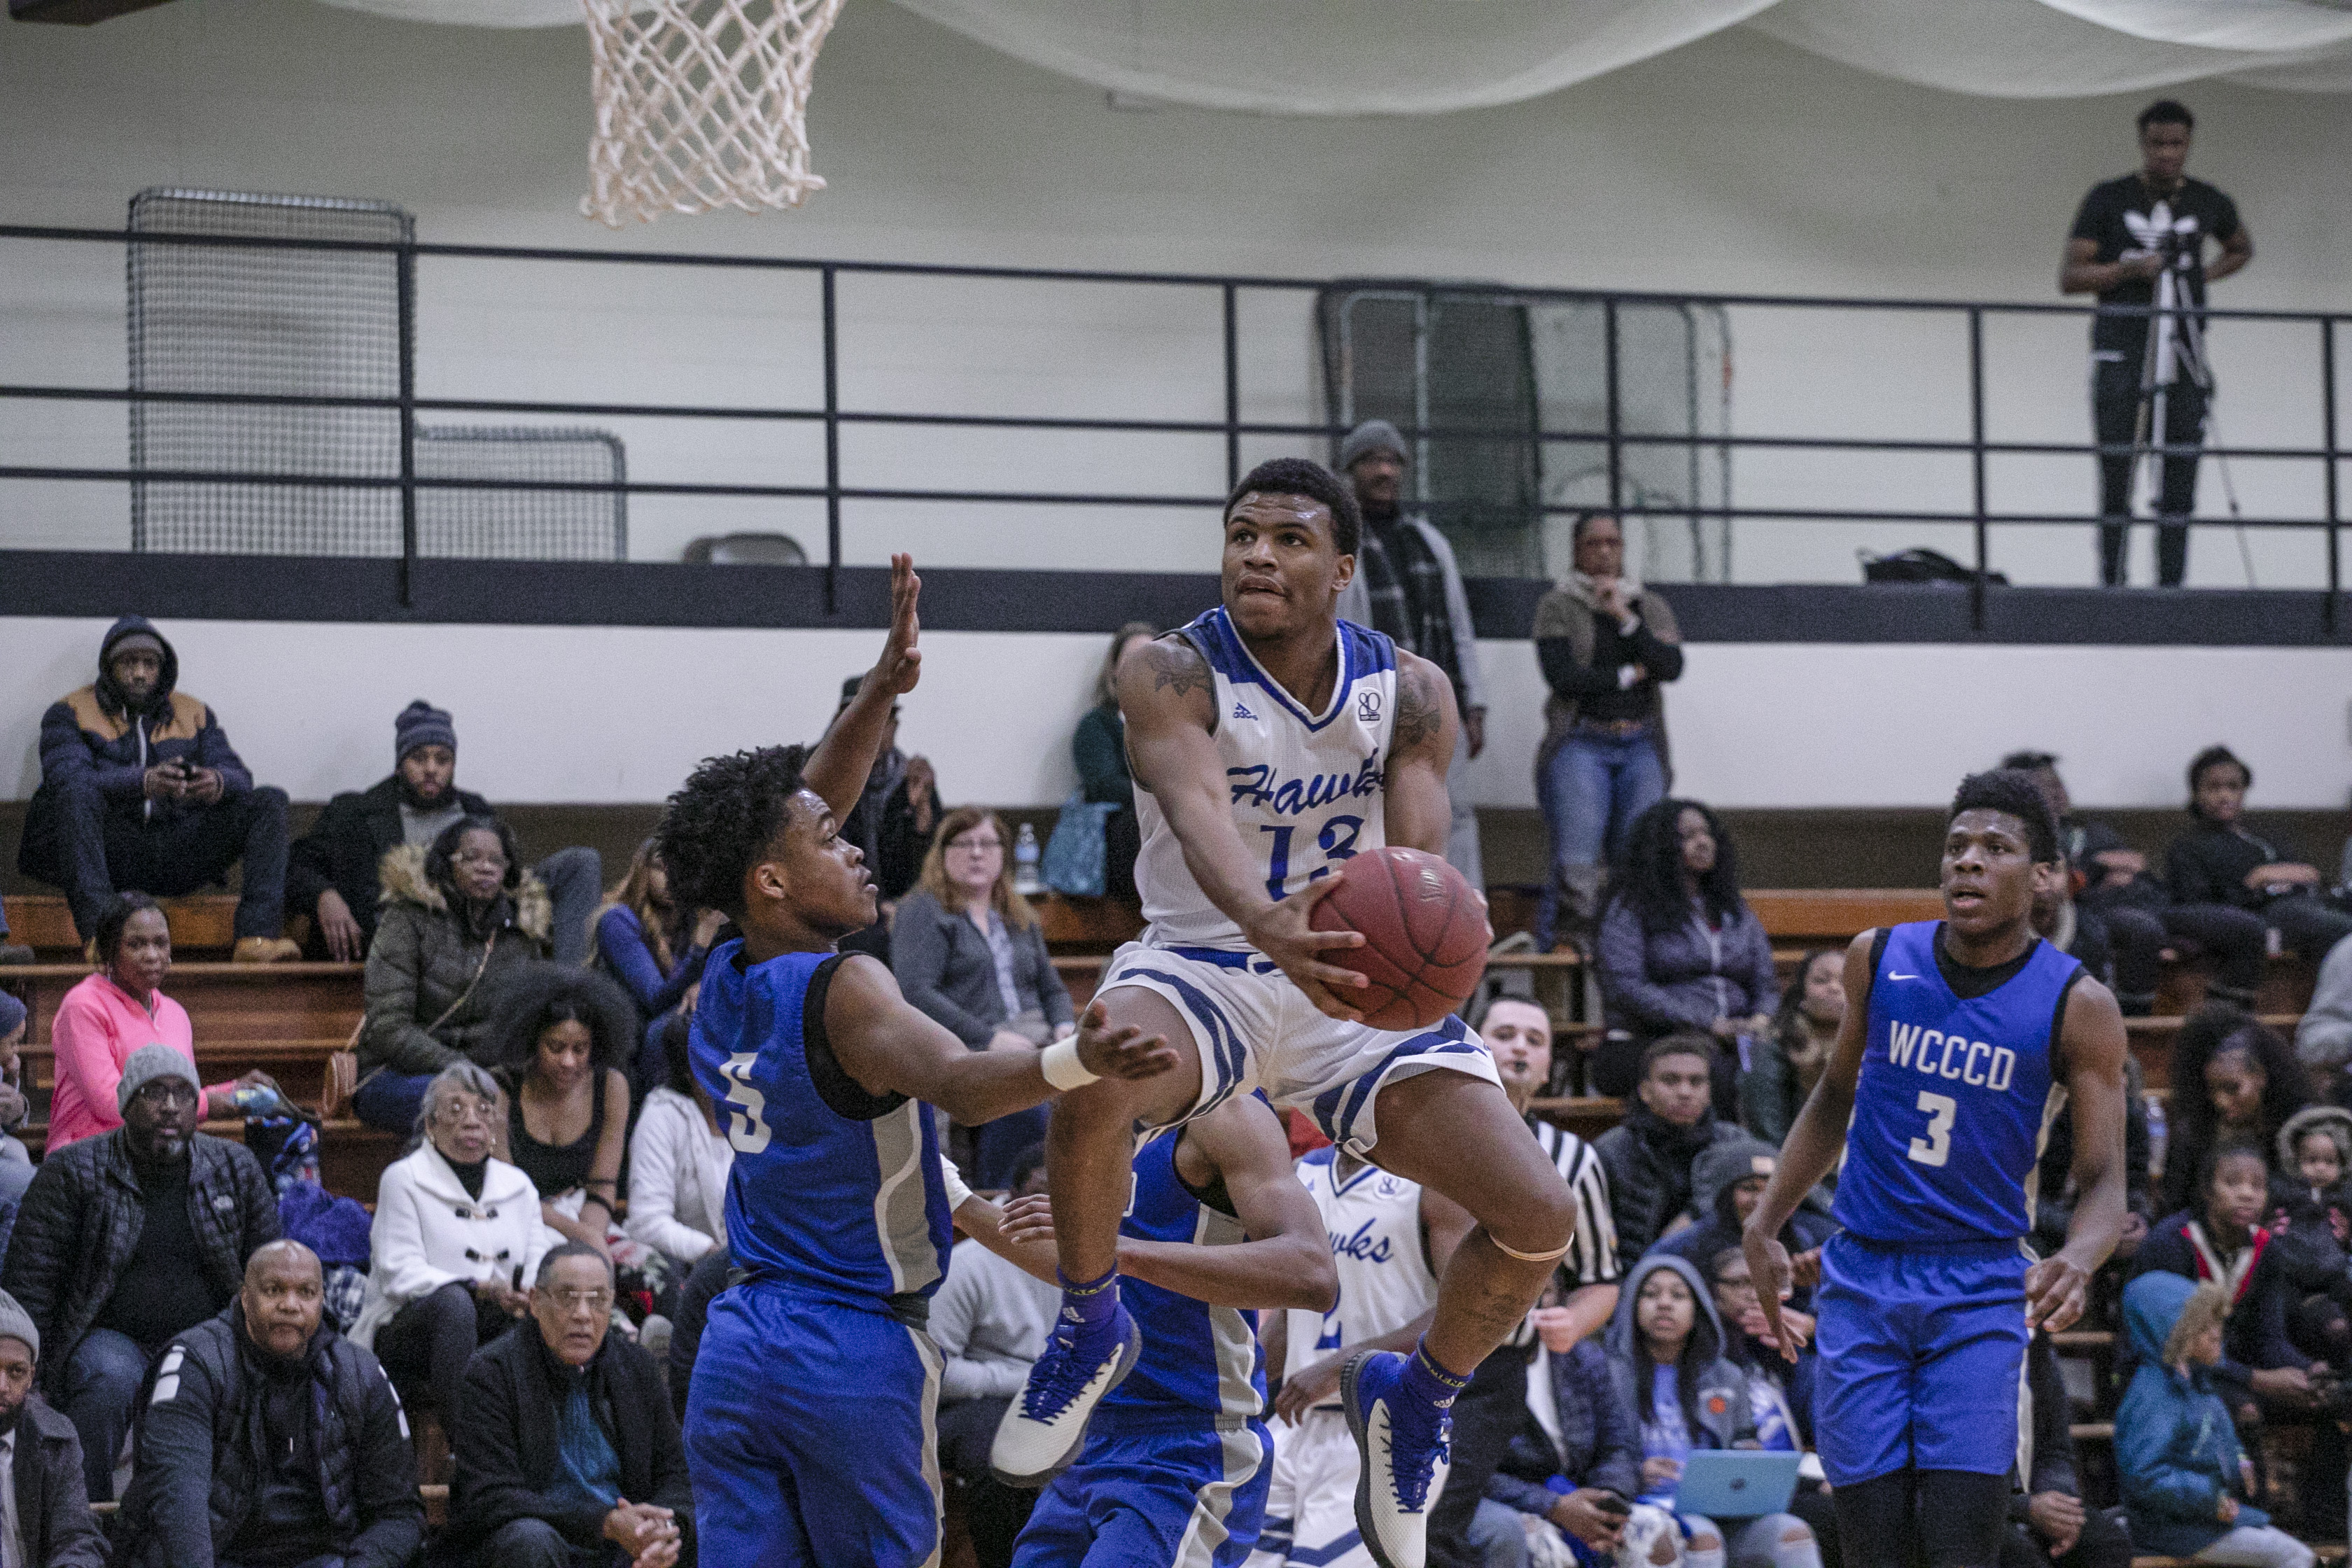 HFC's Luster Johnson driving to the hoop for a reverse layup with a defender on him